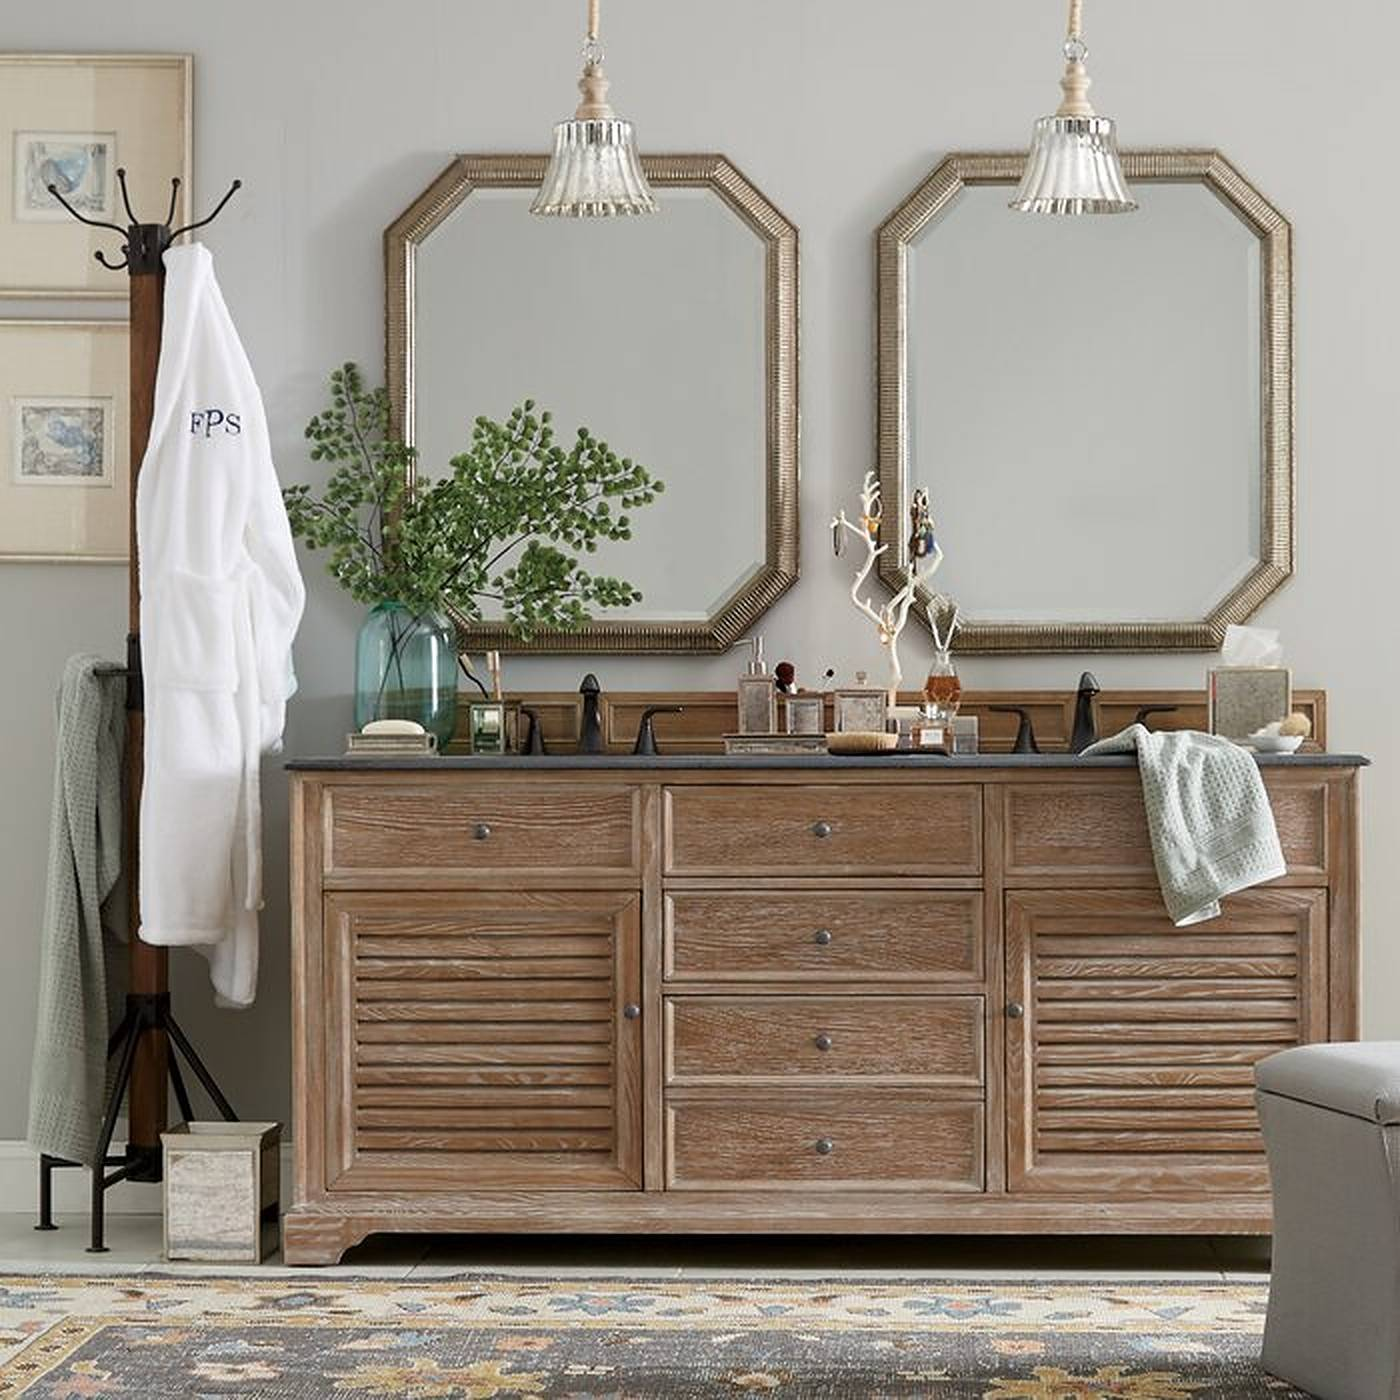 Double bathroom vanity with two mirrors and pendant lights